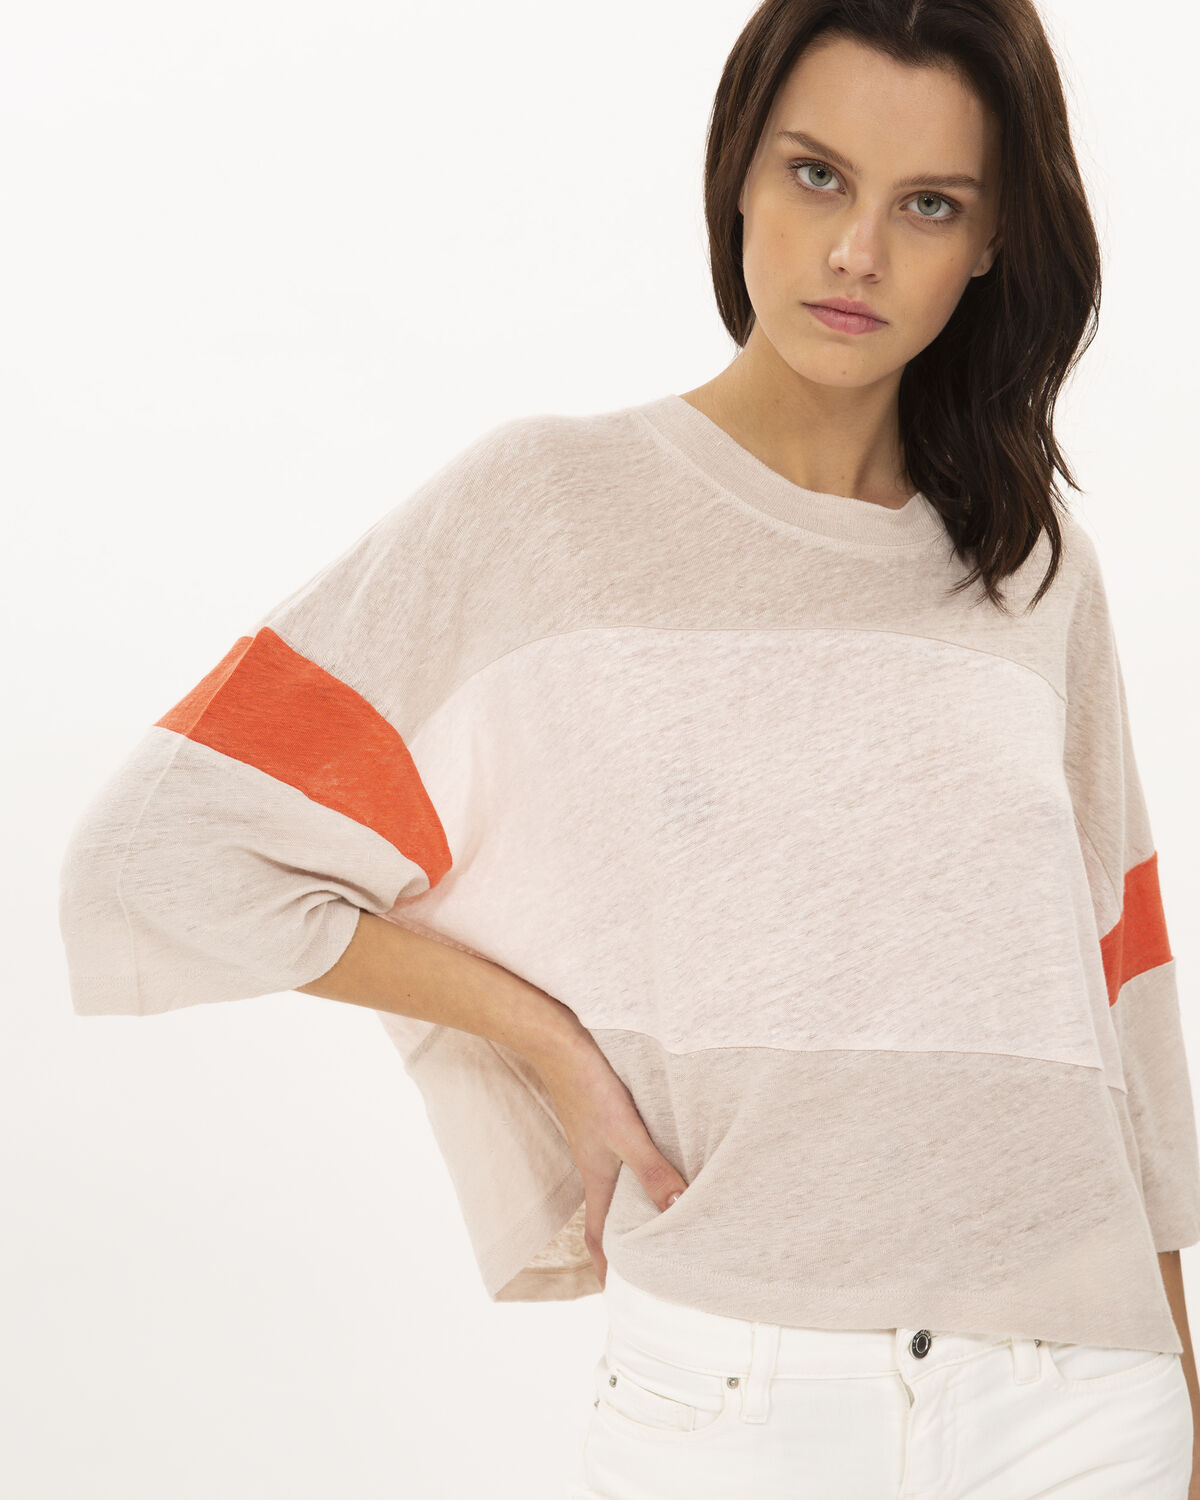 Discreet T-Shirt Light Brown And Orange by IRO Paris